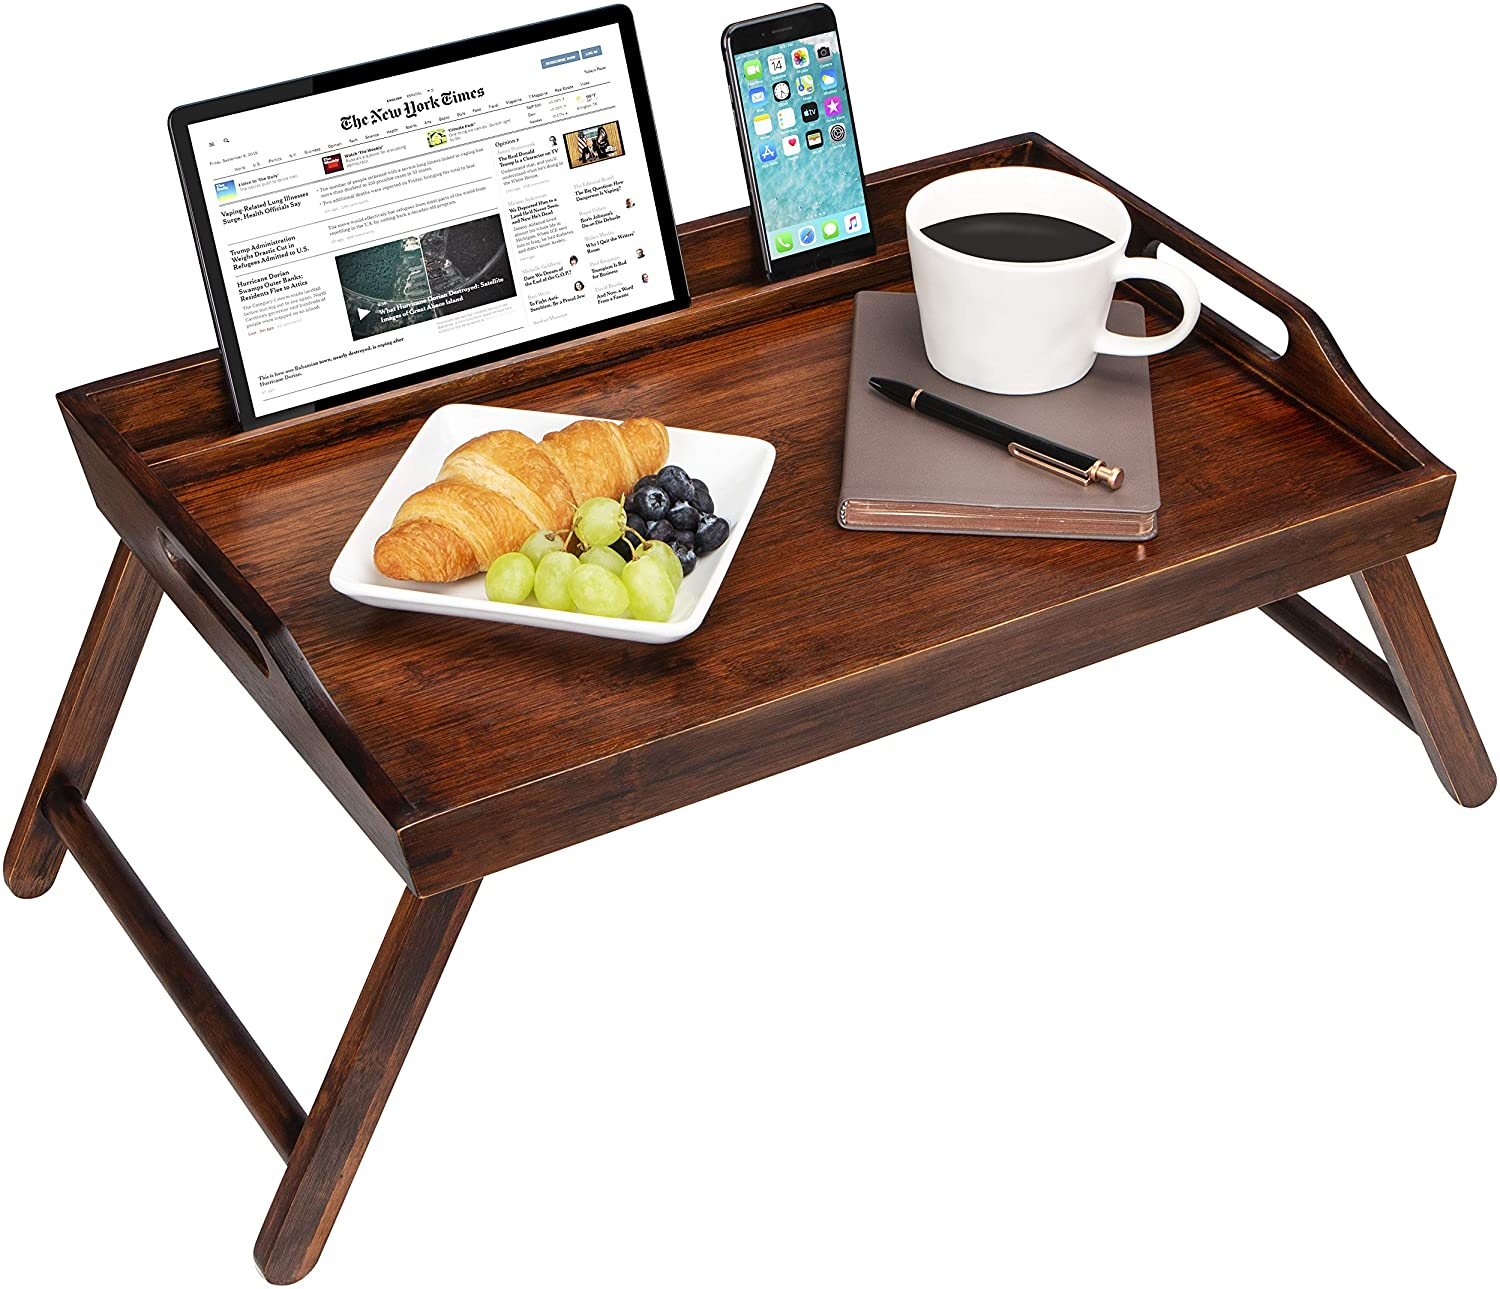 <strong>7. LapGear Media Bed Tray</strong>